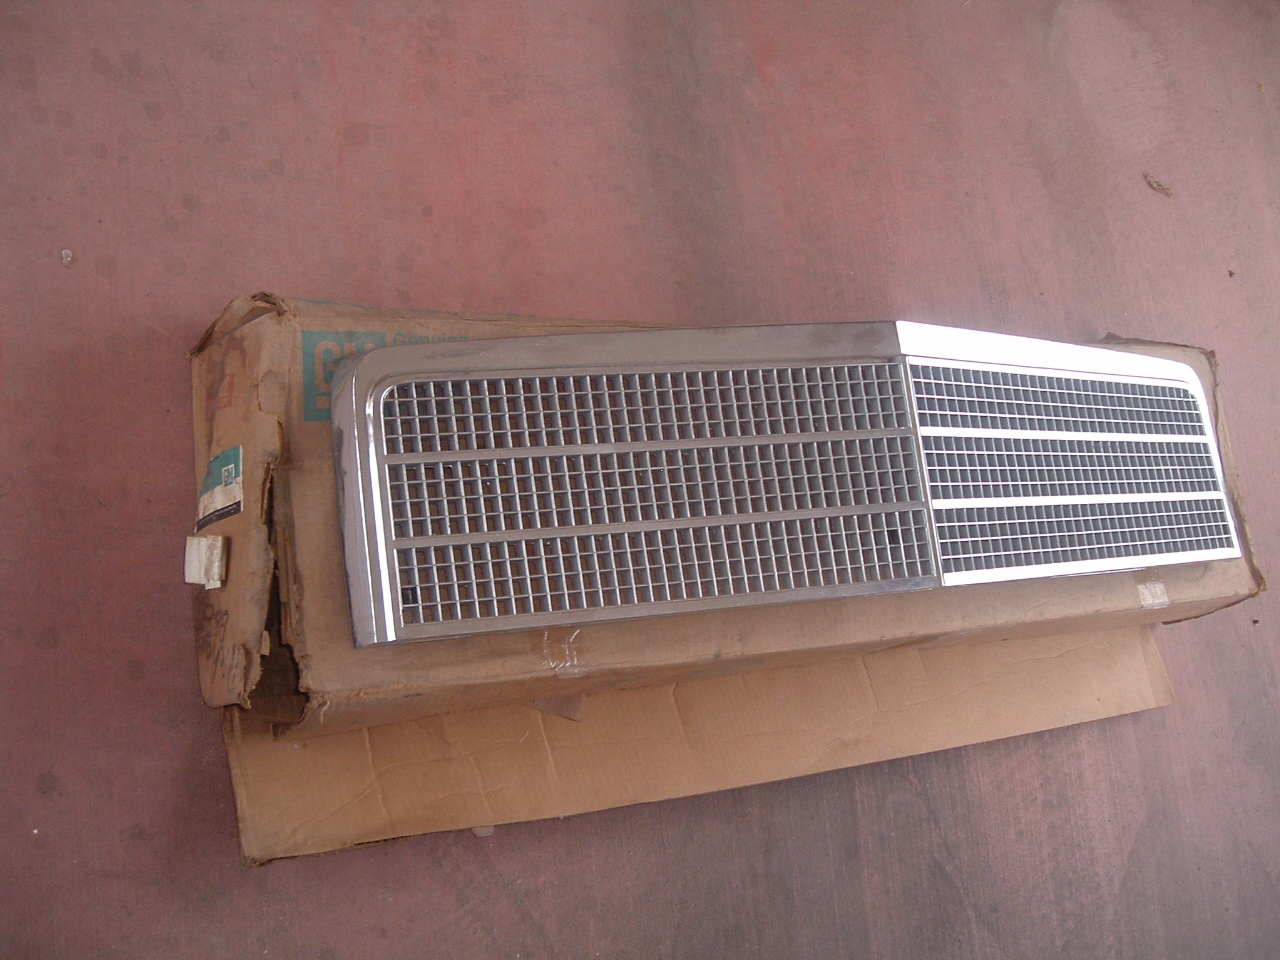 1974 chevelle malibu front grille nos gm 338511 (z 338511)